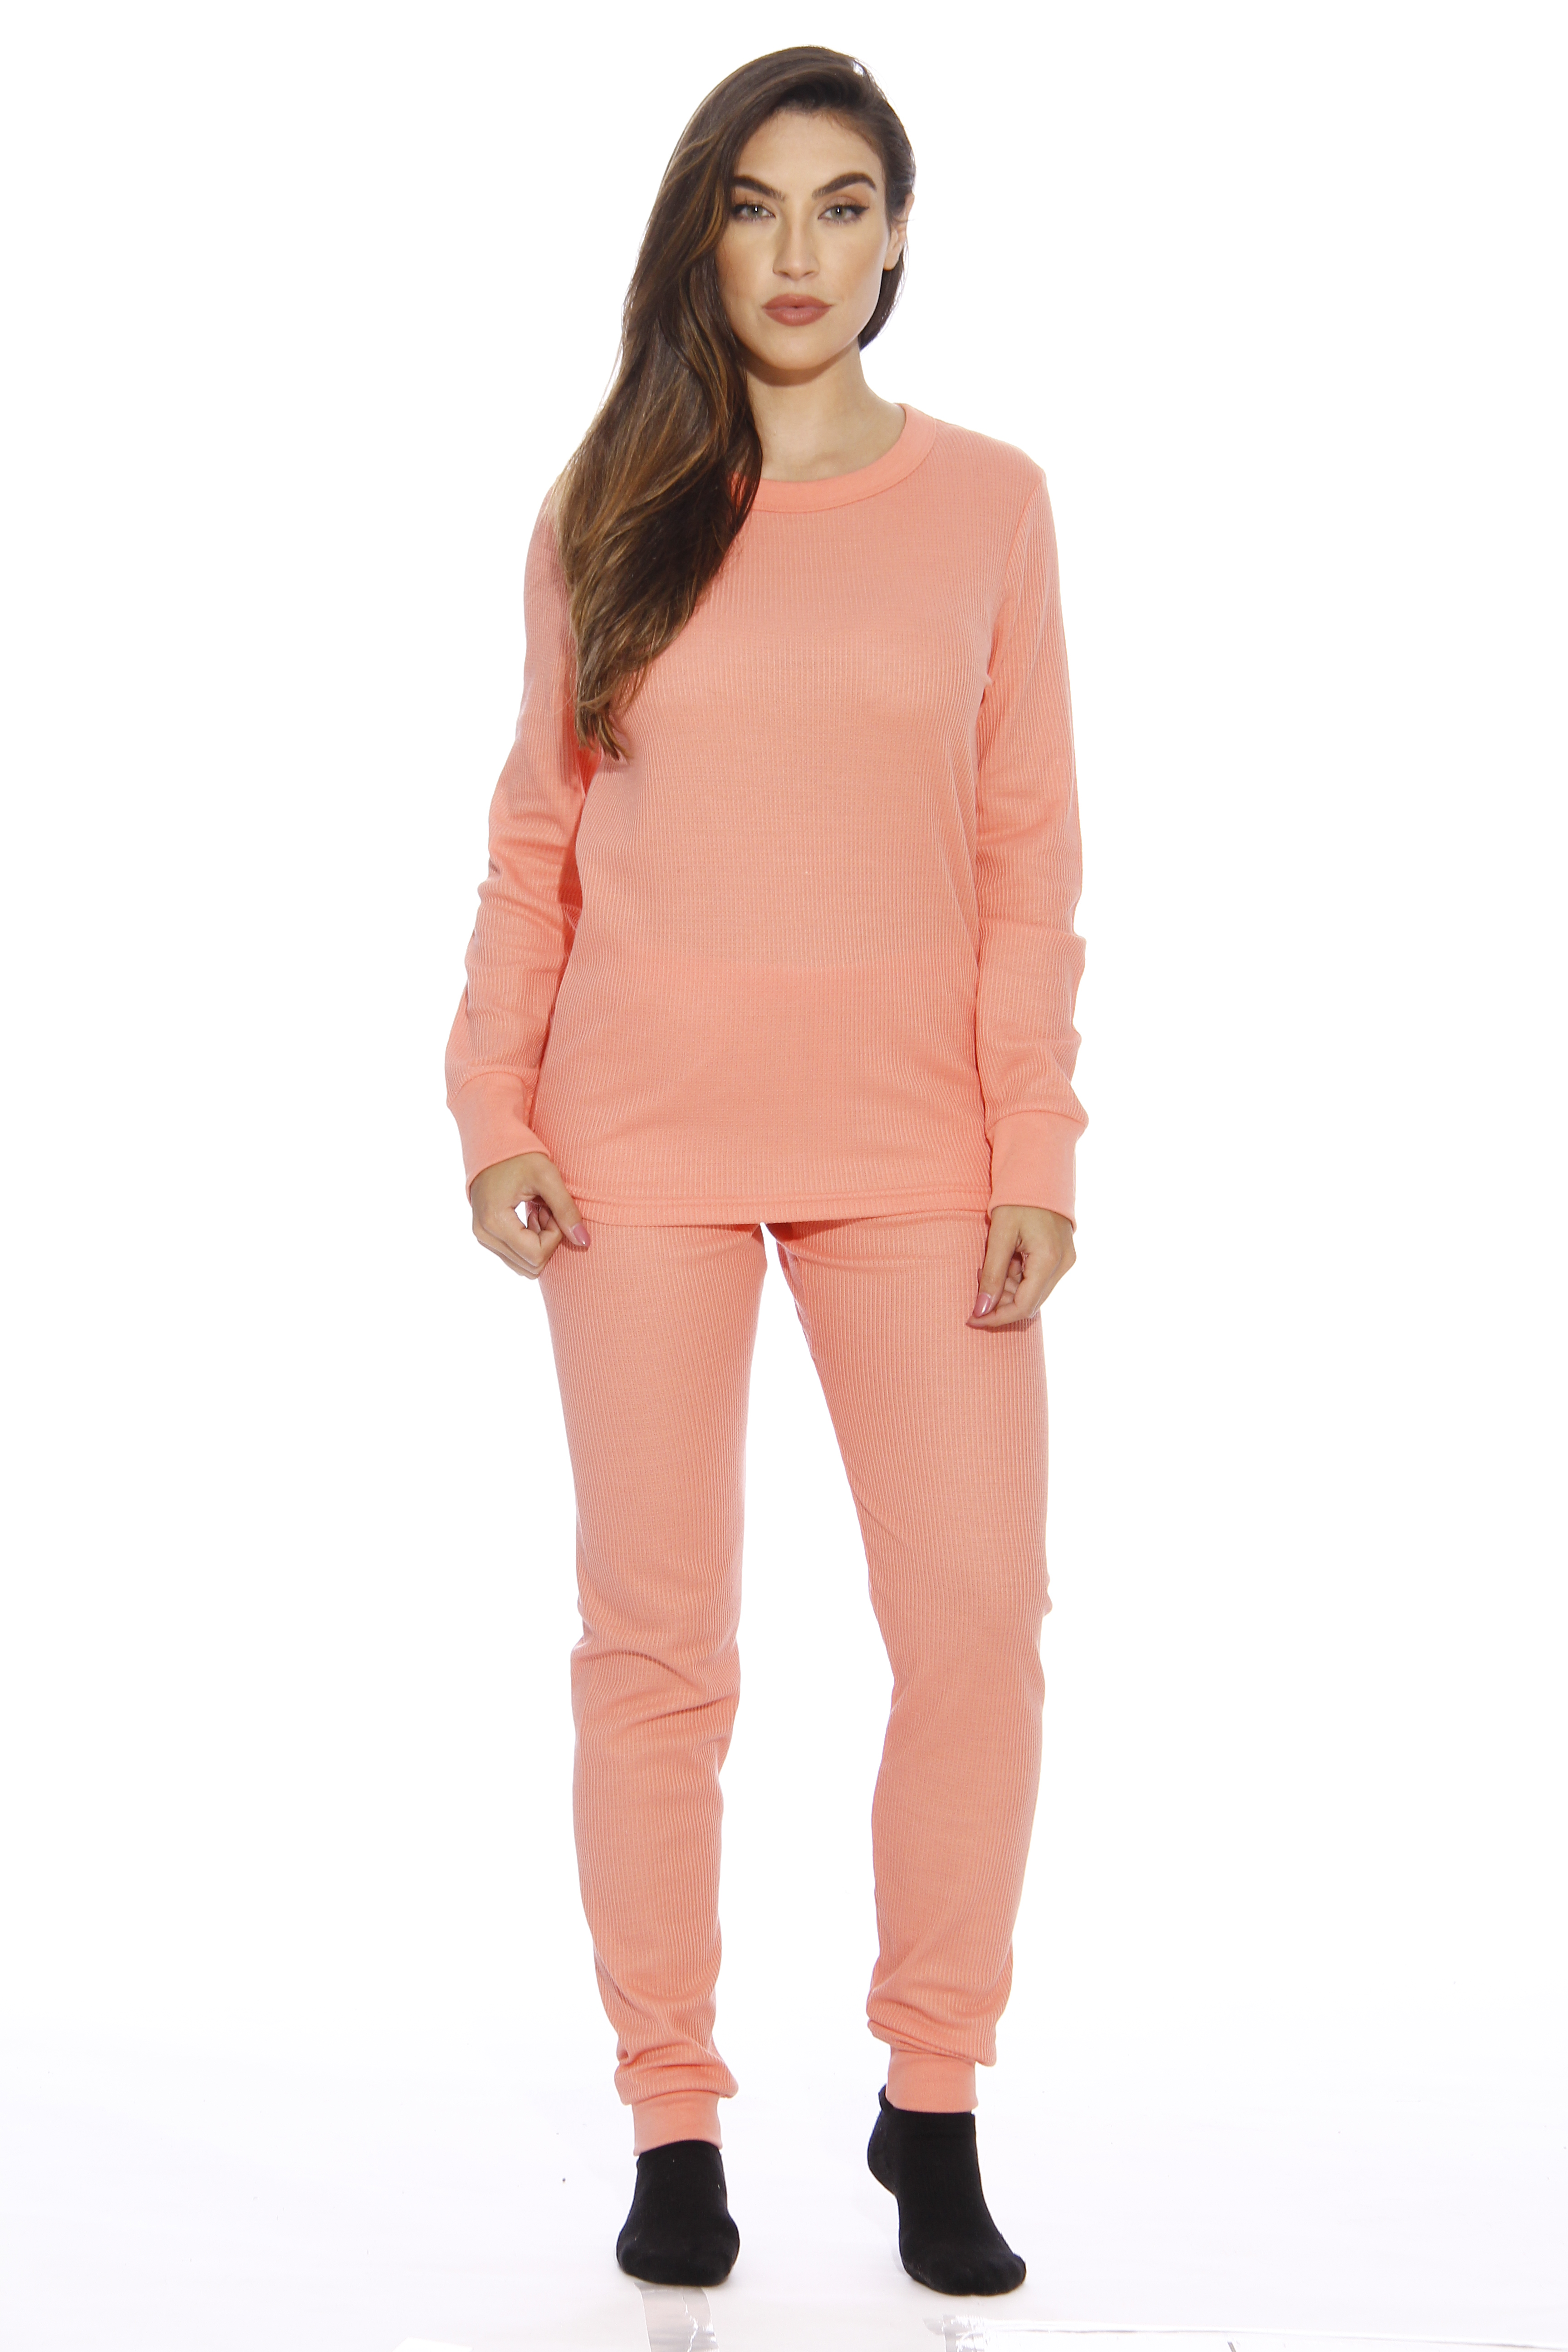 Just Love - Just Love Thermal Underwear Set (Grey 929644a30